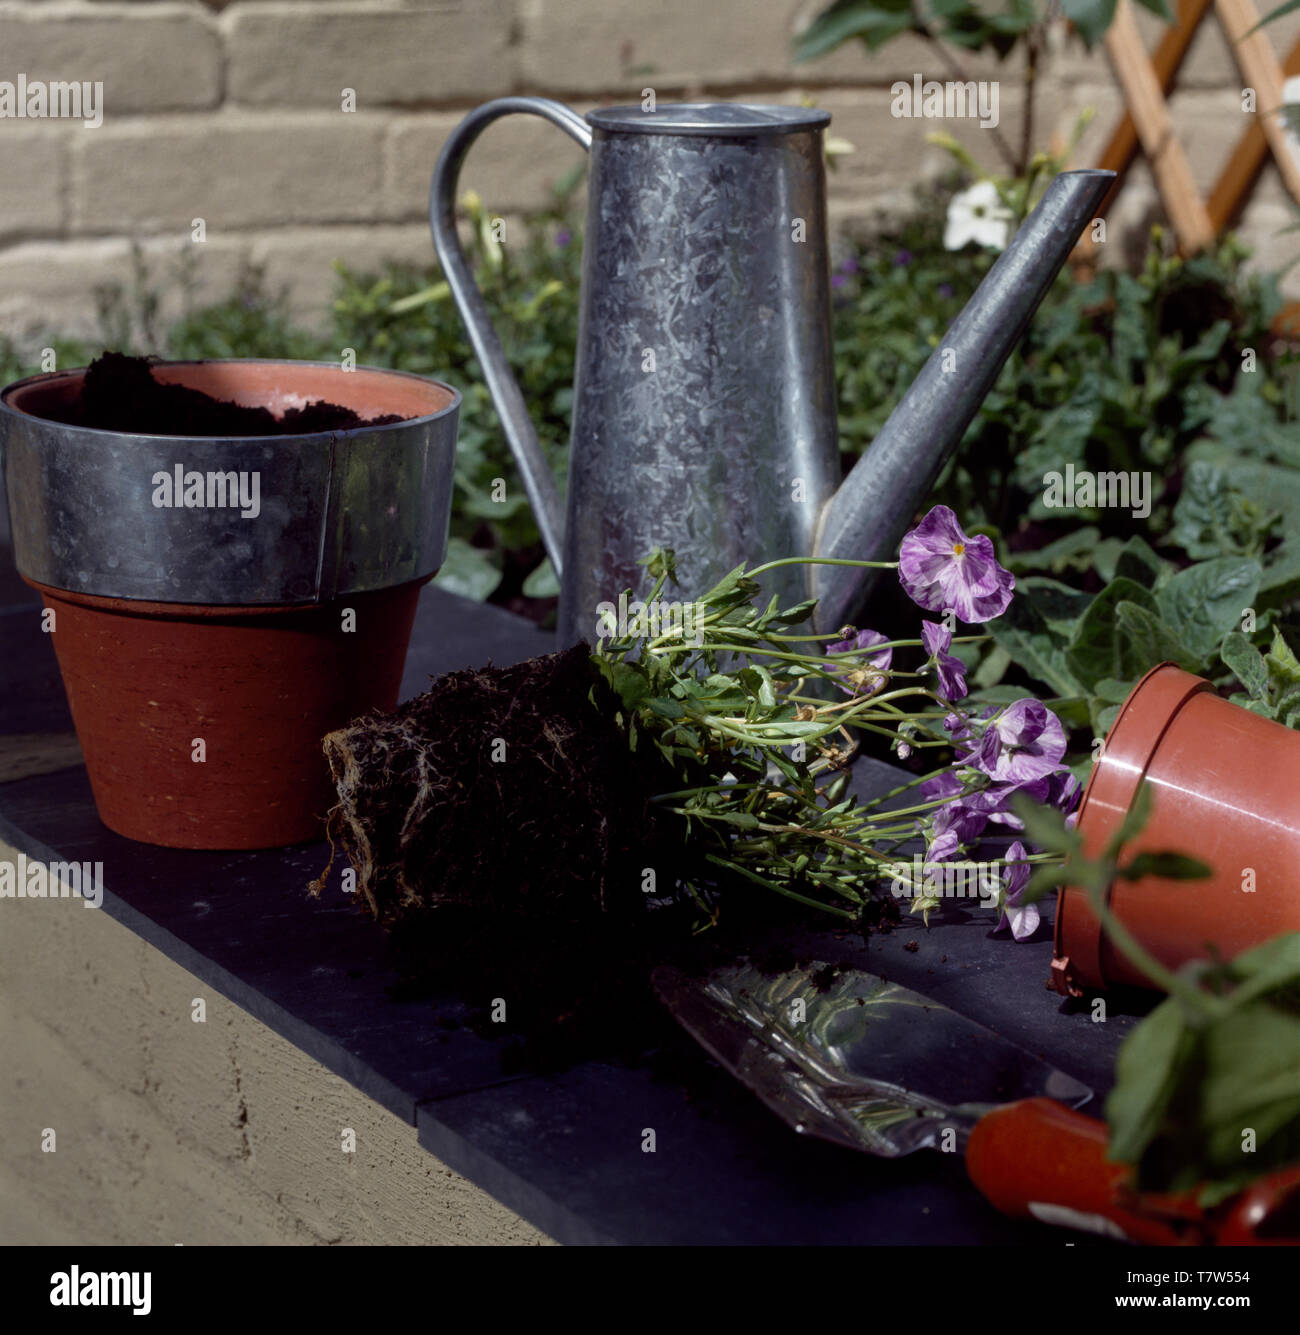 Galvanized watering can and plastic flowerpots - Stock Image